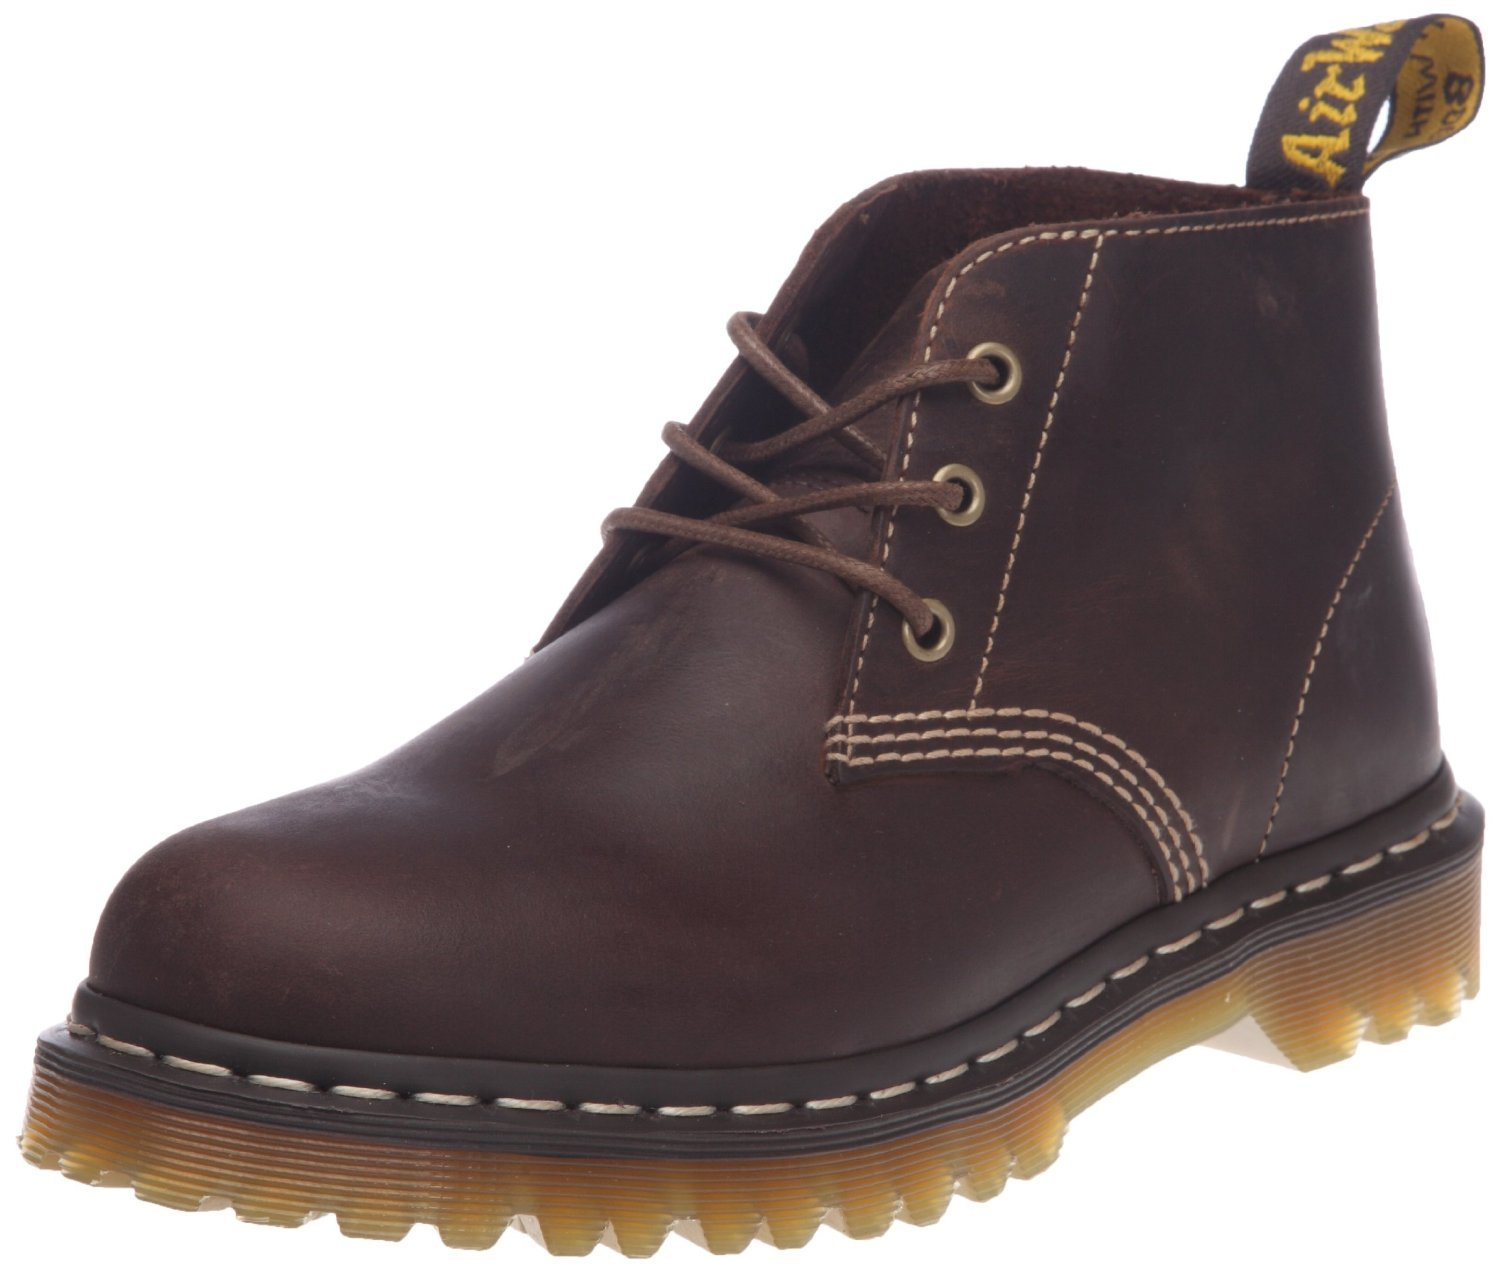 dr martens dr martens mens tyrell boot in brown for